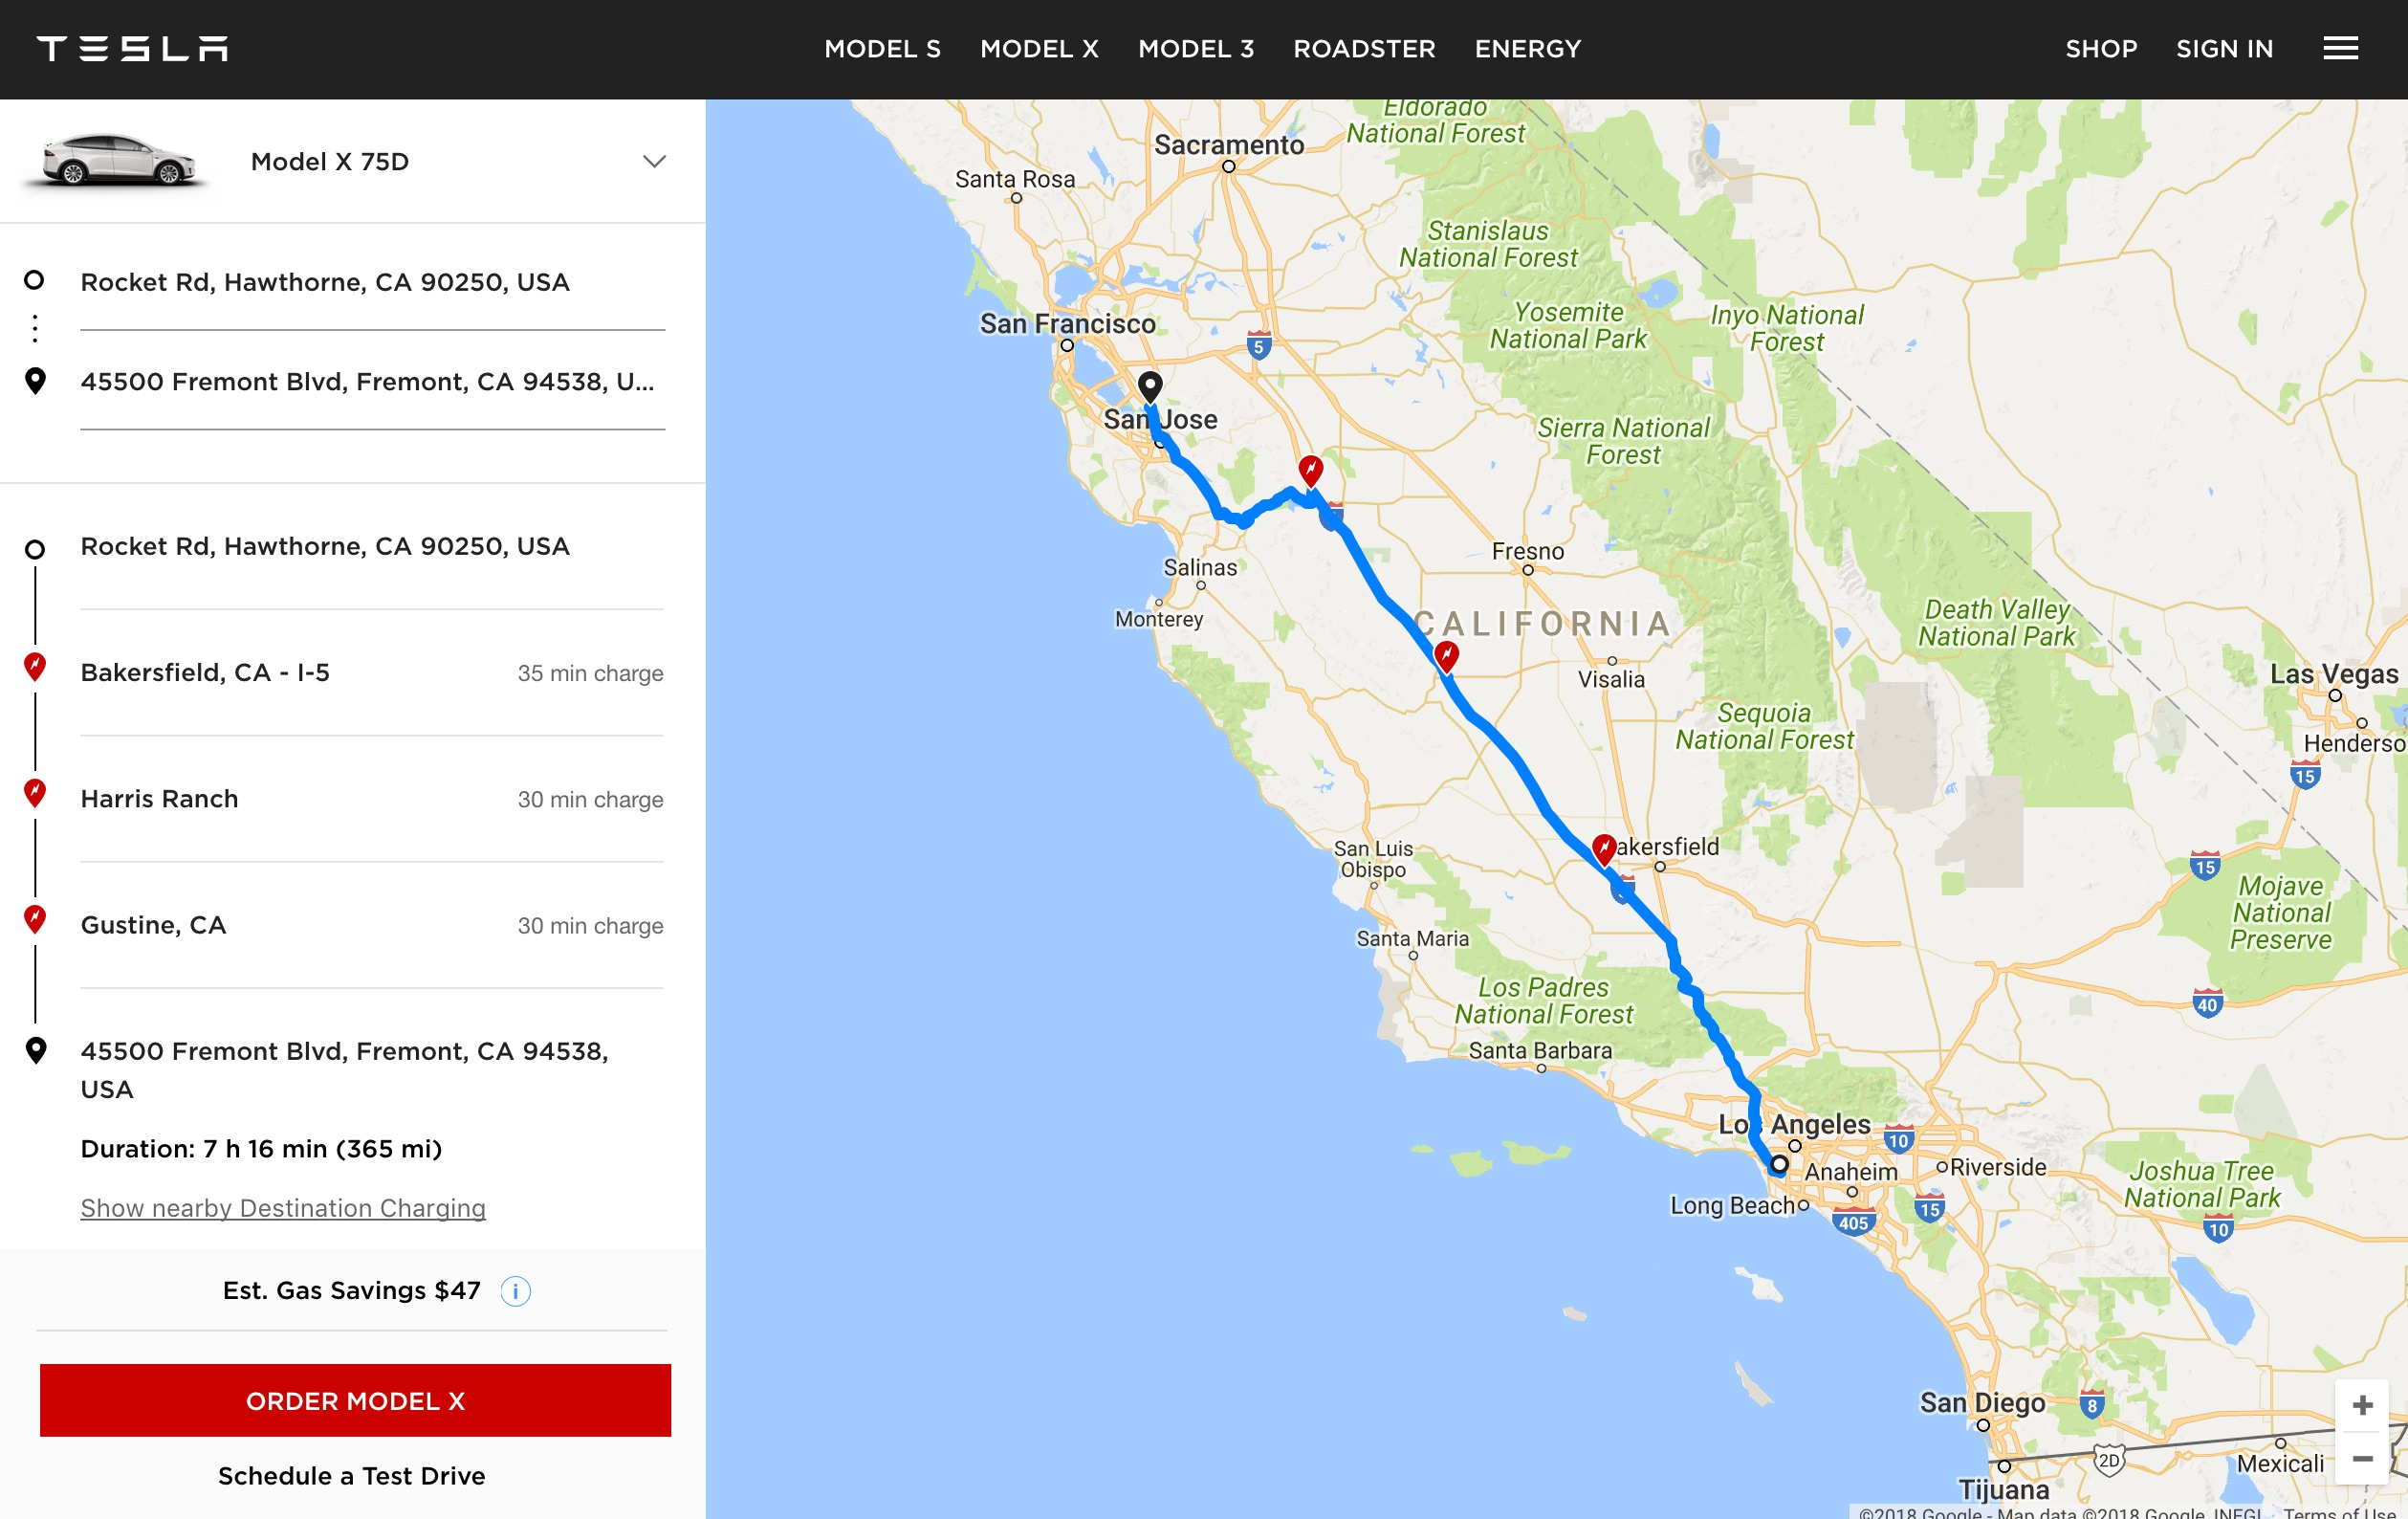 """Tesla Launches """"ev Trip Planner"""" Tool With Map Of Supercharger Locations - Tesla Charging Stations Map California"""